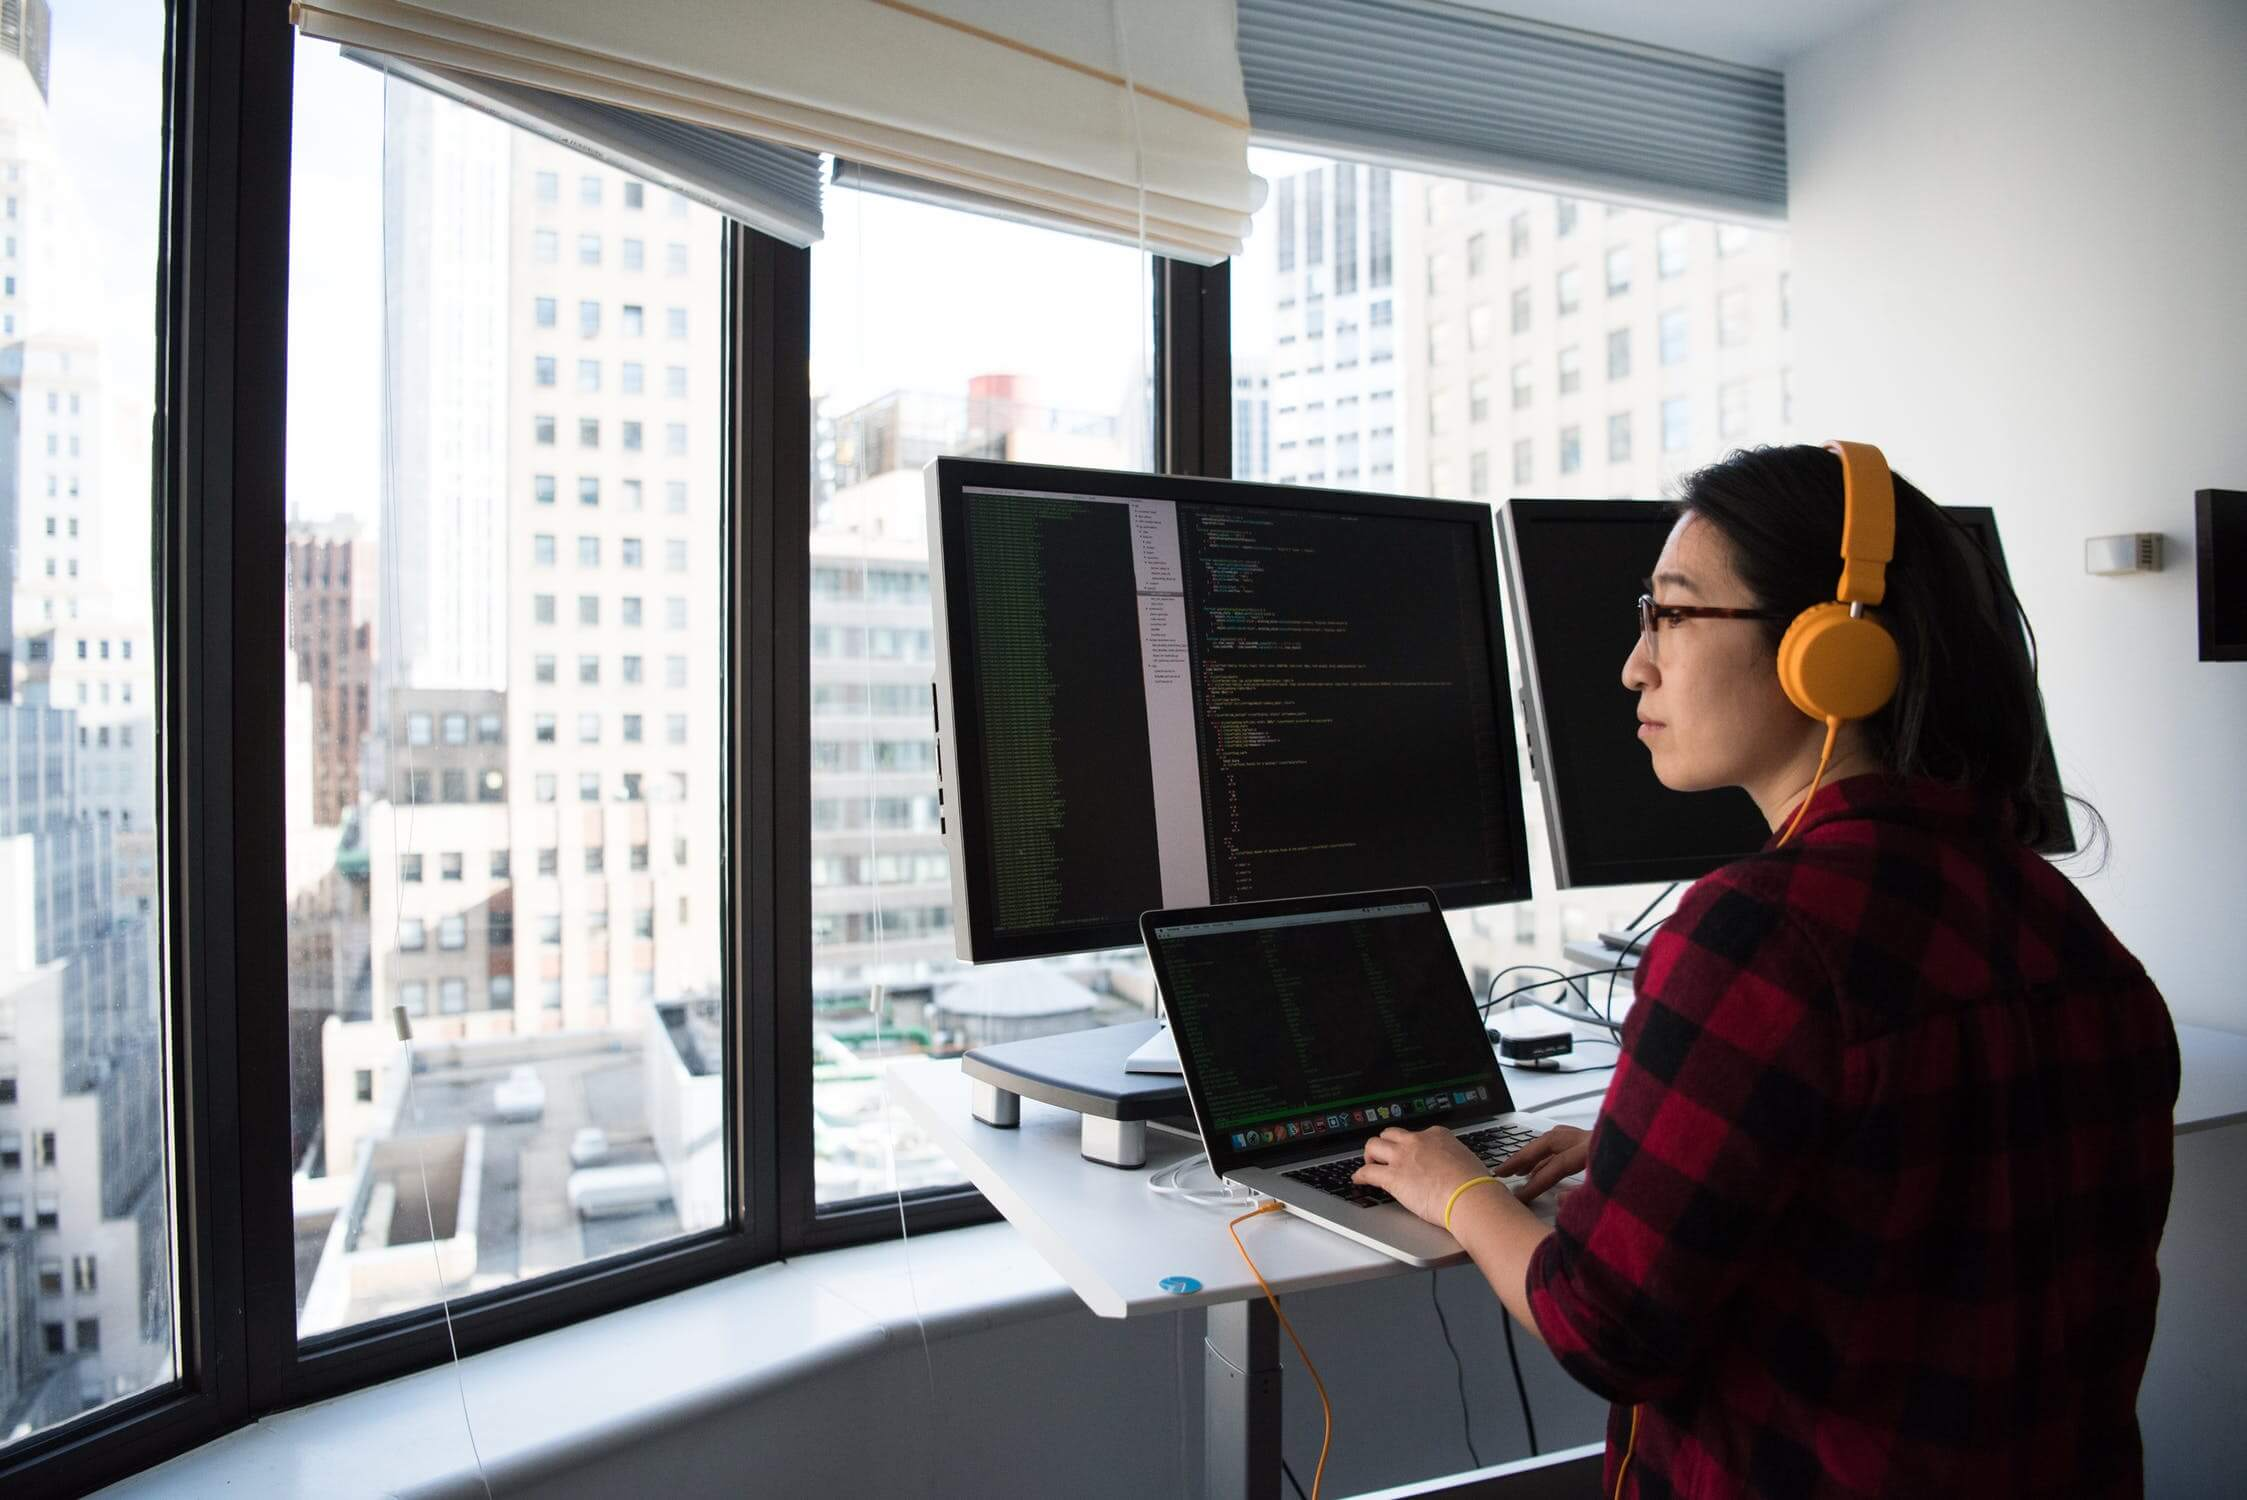 girl works with panoramic view